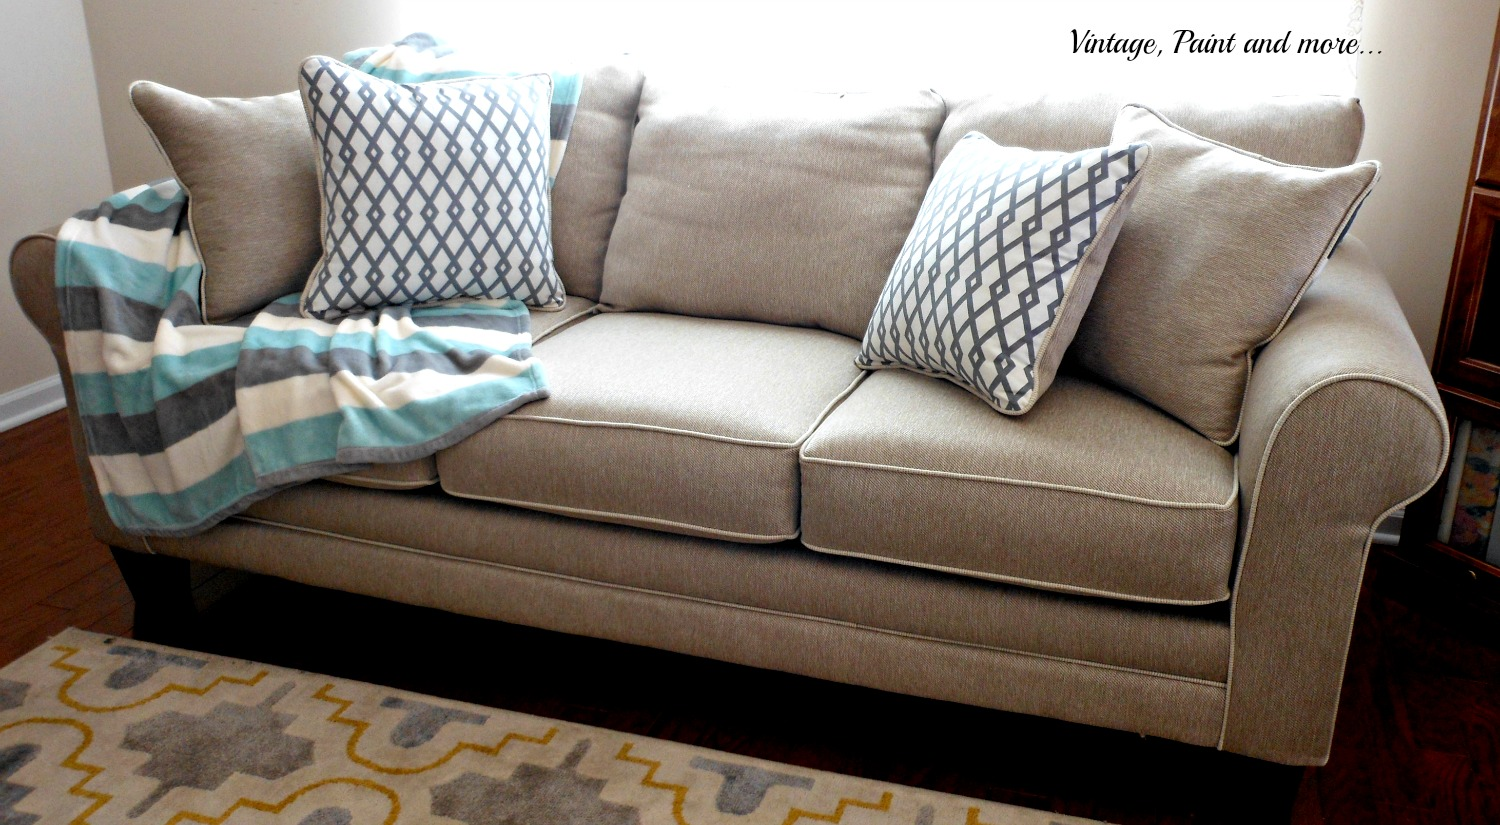 colored sofas sleeper sofa twin a new vintage paint and more